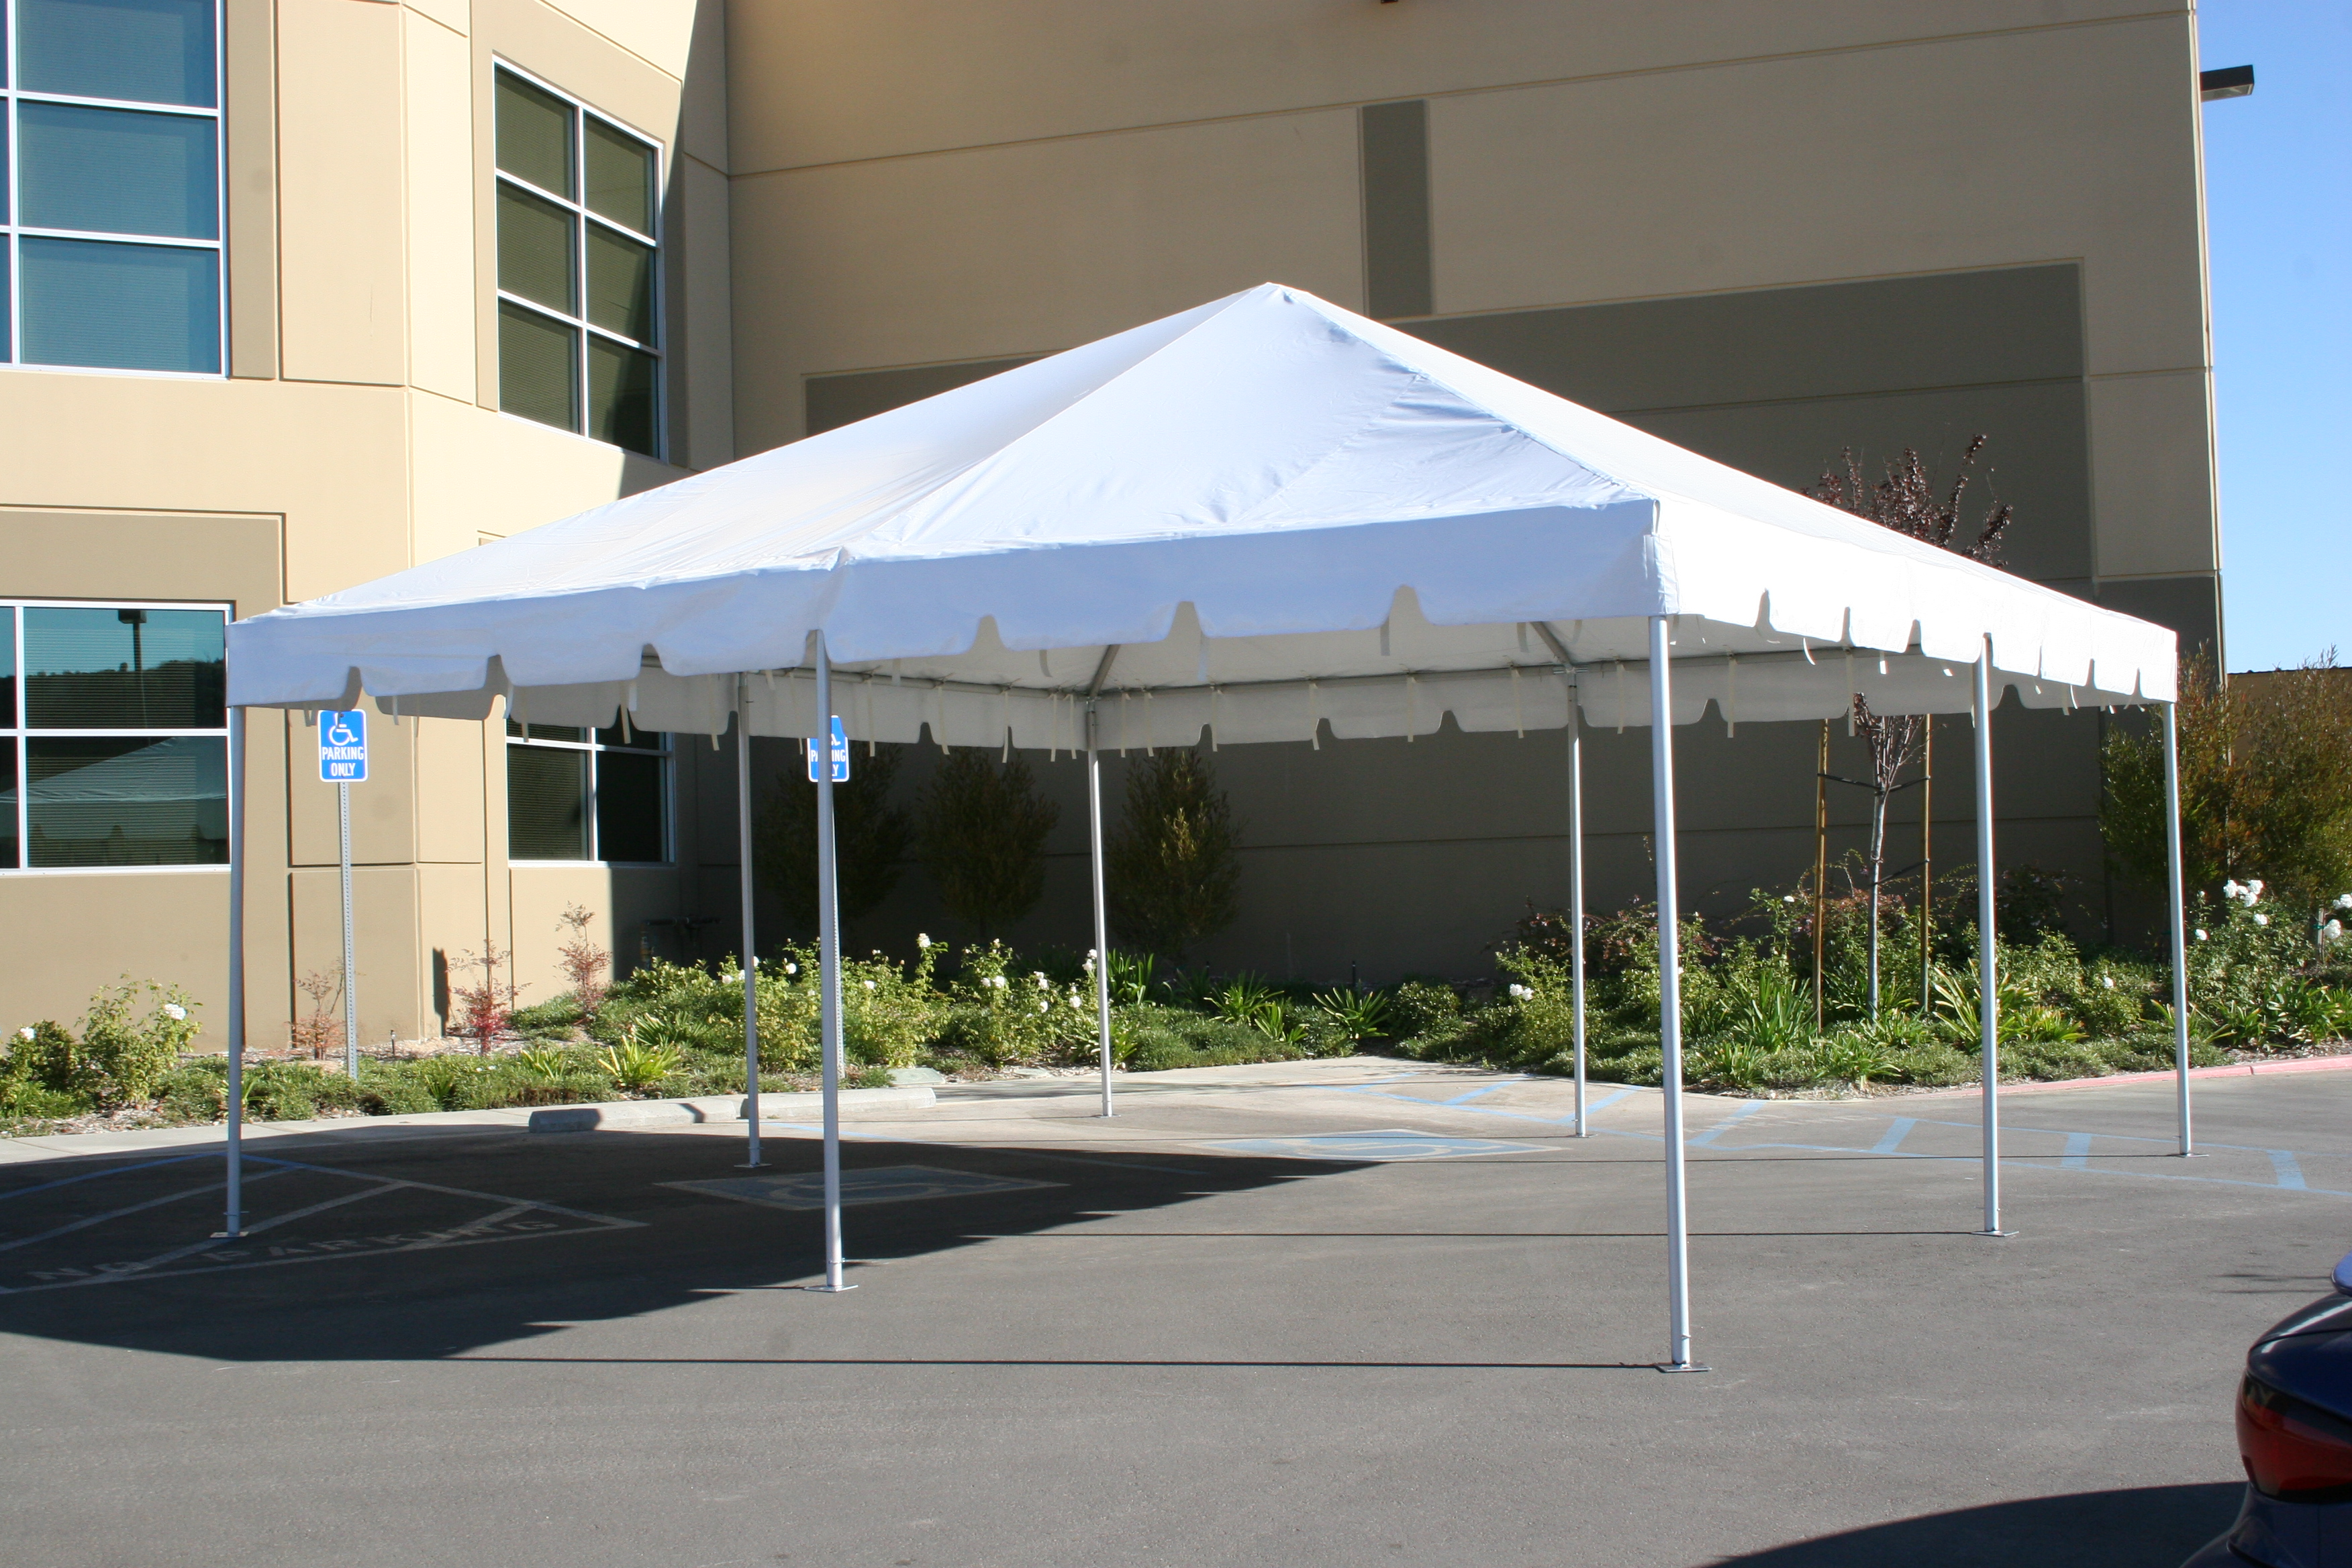 20X20 frame tents sale & 20X20 Frame Tents For Sale | Worldwide Tents